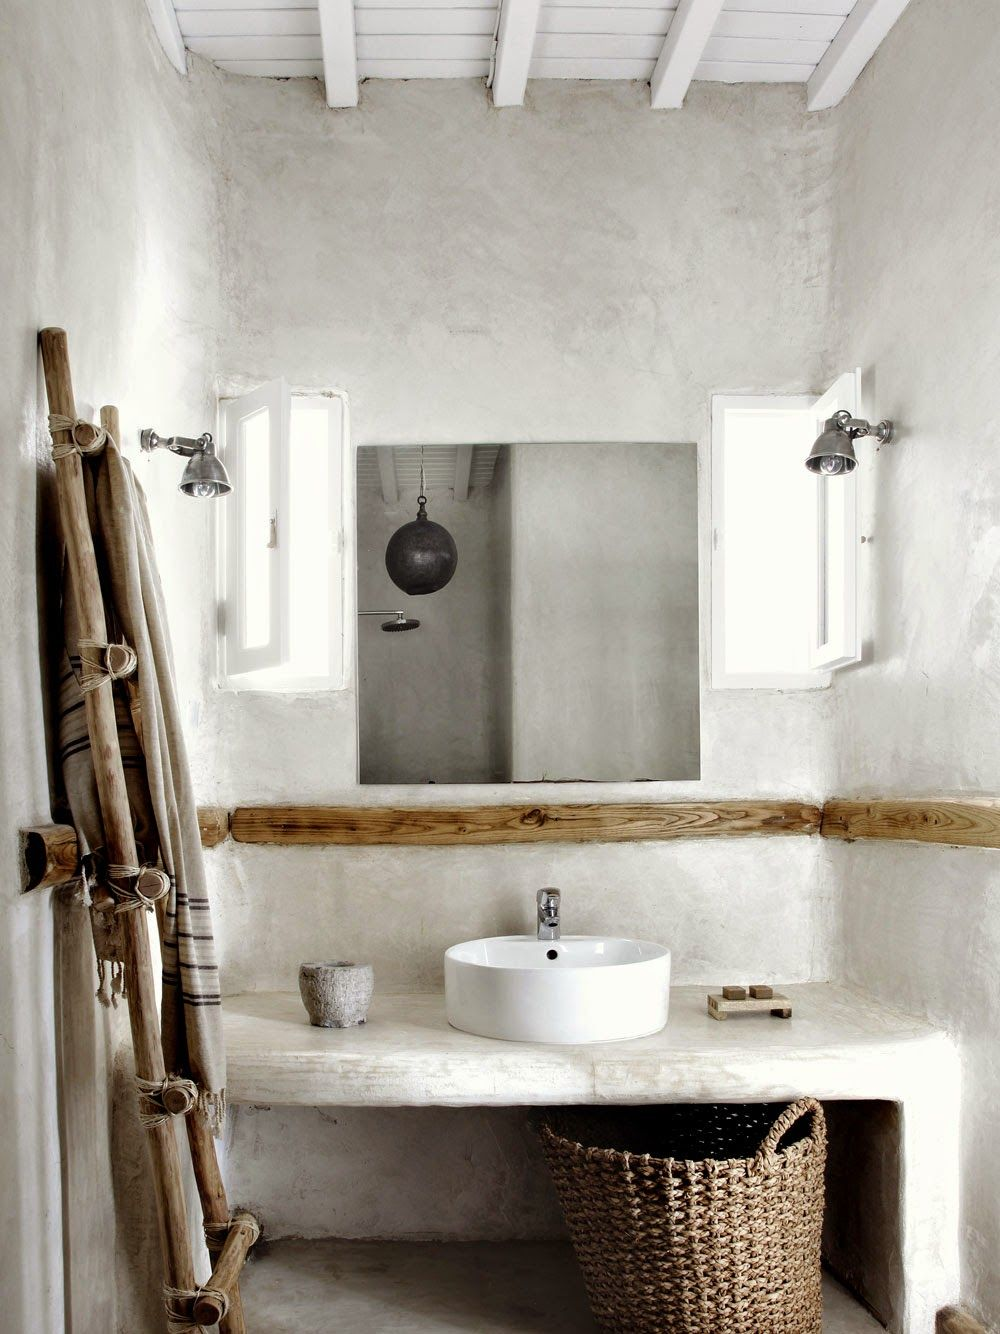 3.jpg 1,000×1,334 pixels | concrete bathroom | Pinterest | Concrete ...